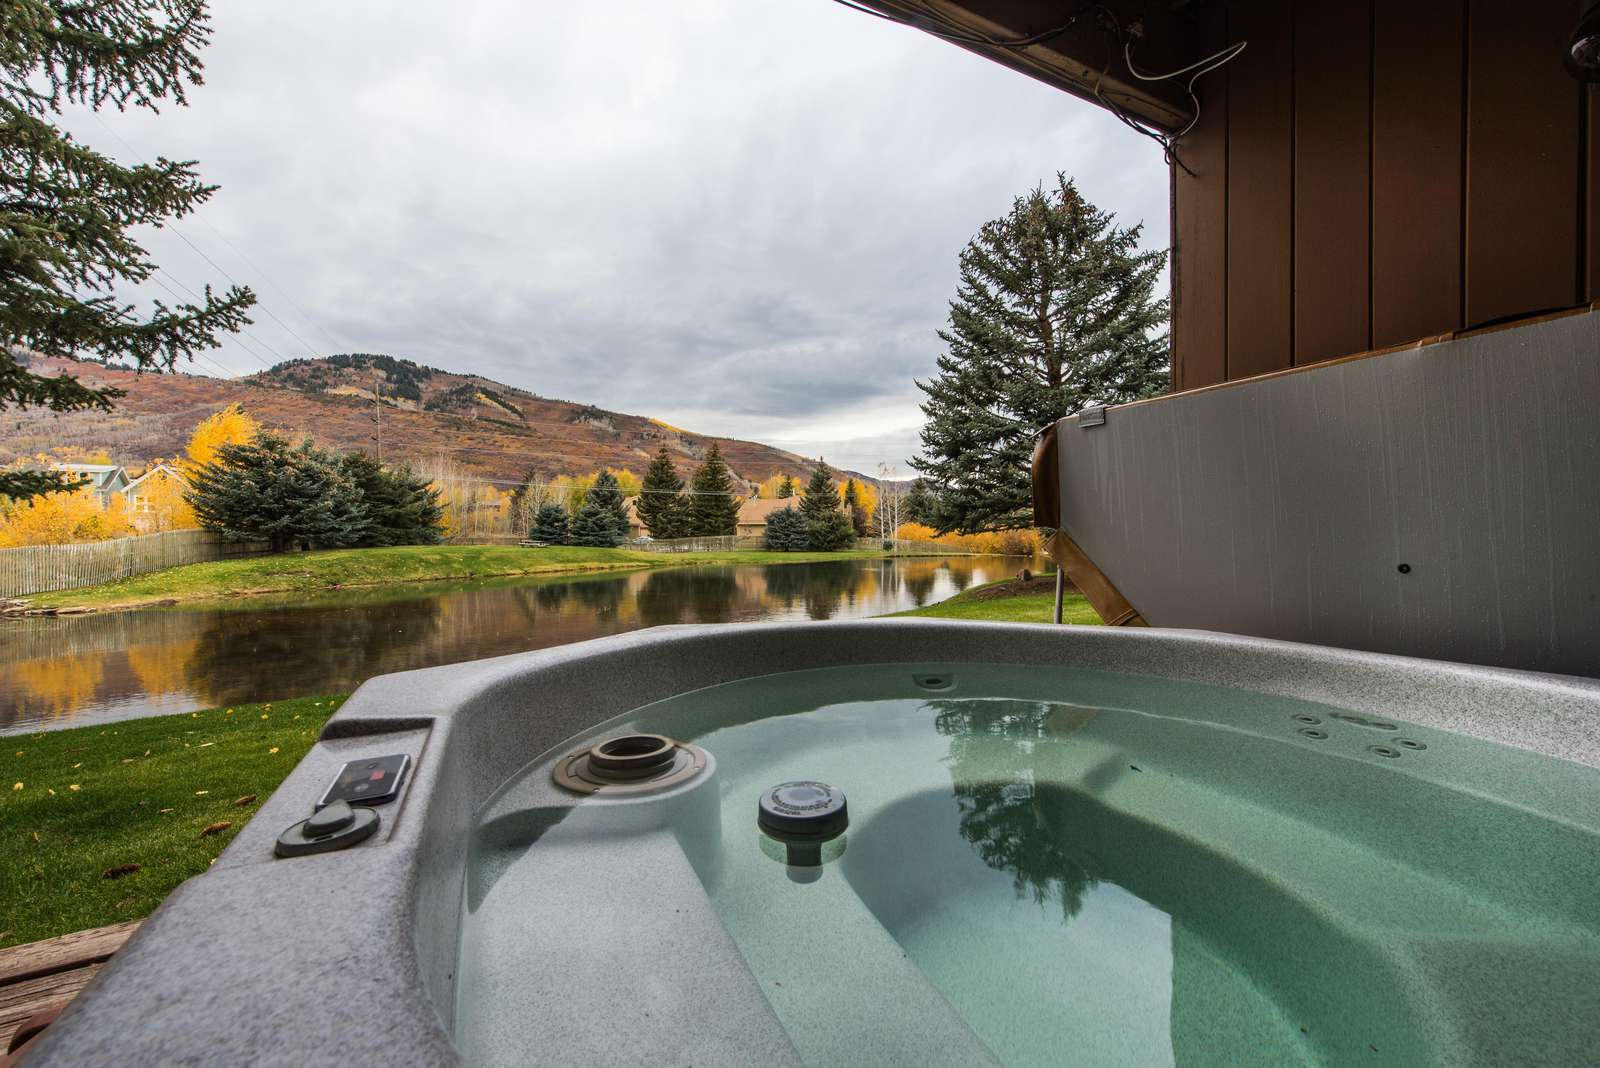 6 person hot tub overlooking the pond